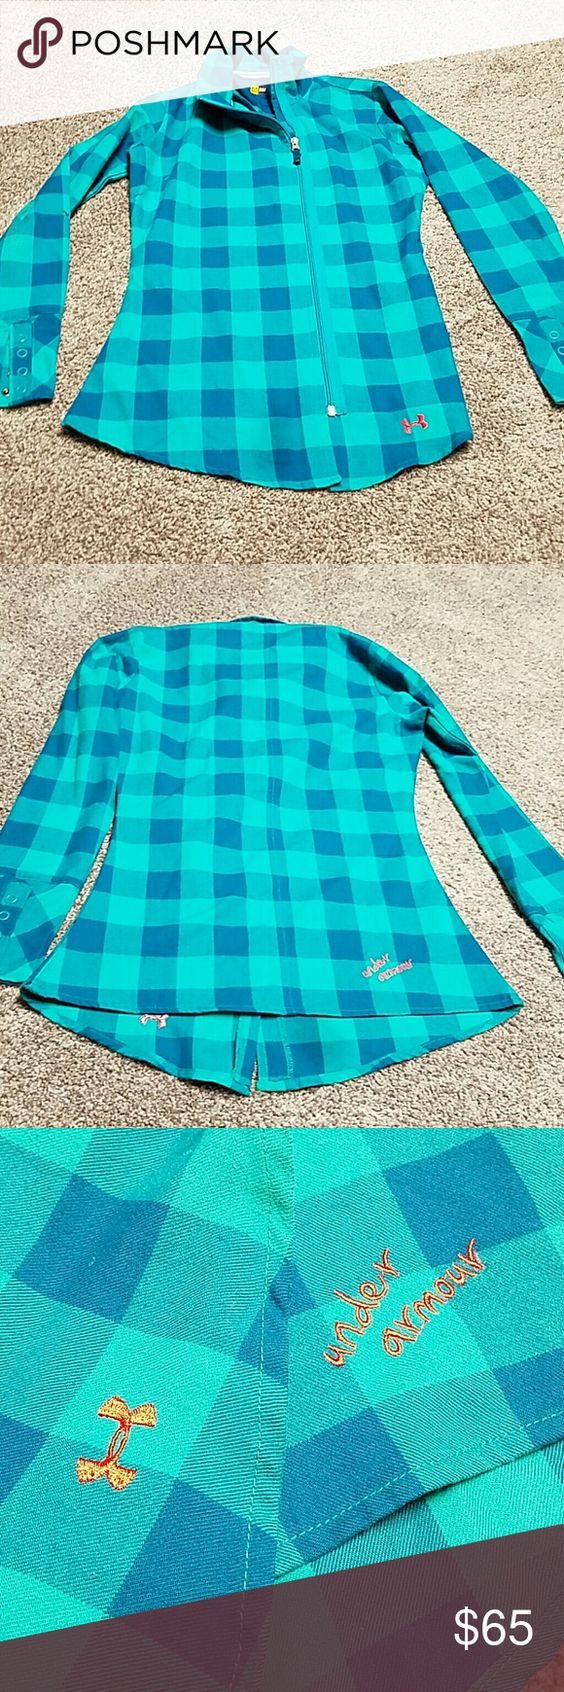 Under Armour Full Zip Fitted Flannel S Love the colors on this with the punk under Armour logos. Very feminine. Fits nicely at waist. NO TRADES PLEASE DON'T ASK ME! Under Armour Tops Tees - Long Sleeve